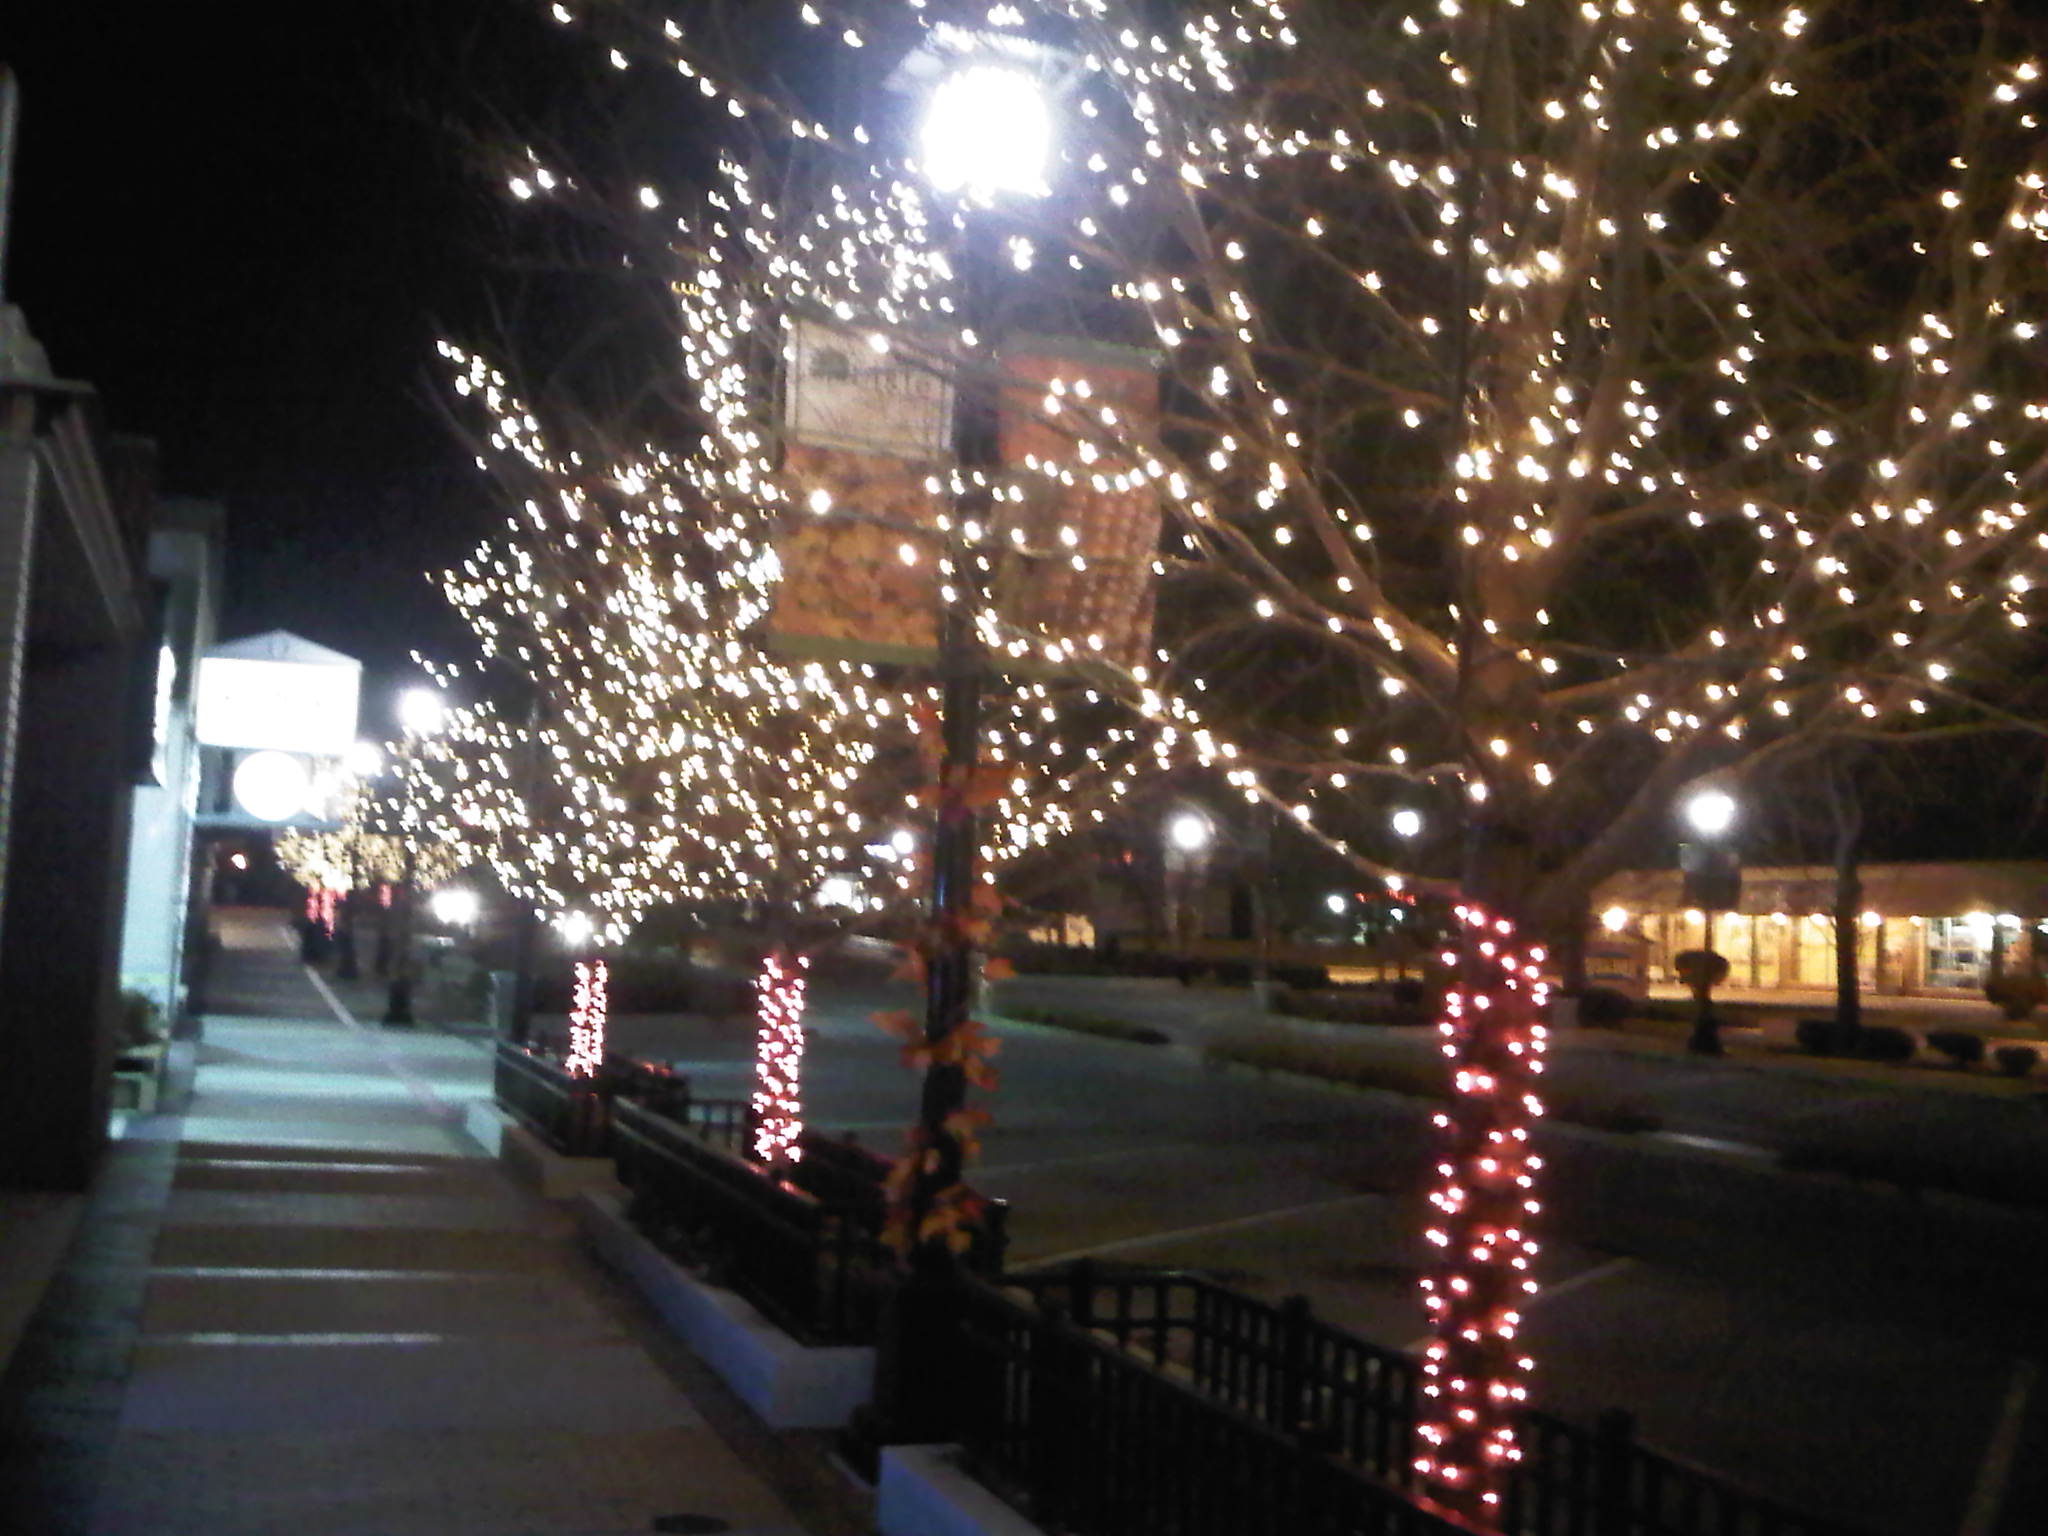 Downtown Lisle Trees Decorated